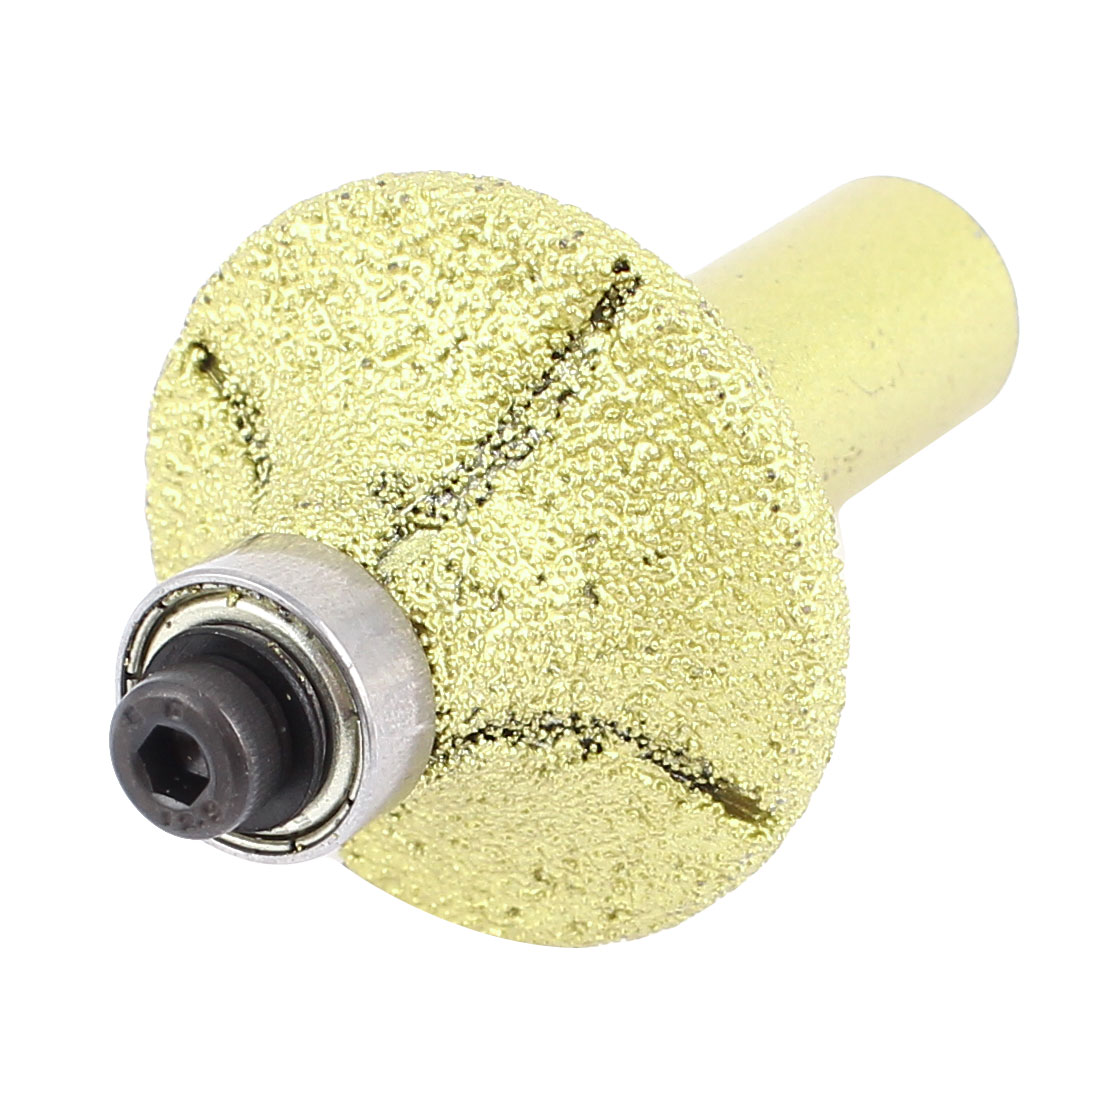 Unique Bargains Gold Tone 35mm Dia Diamond Coated Profile Wheel Router Bit for Granite... by Unique-Bargains